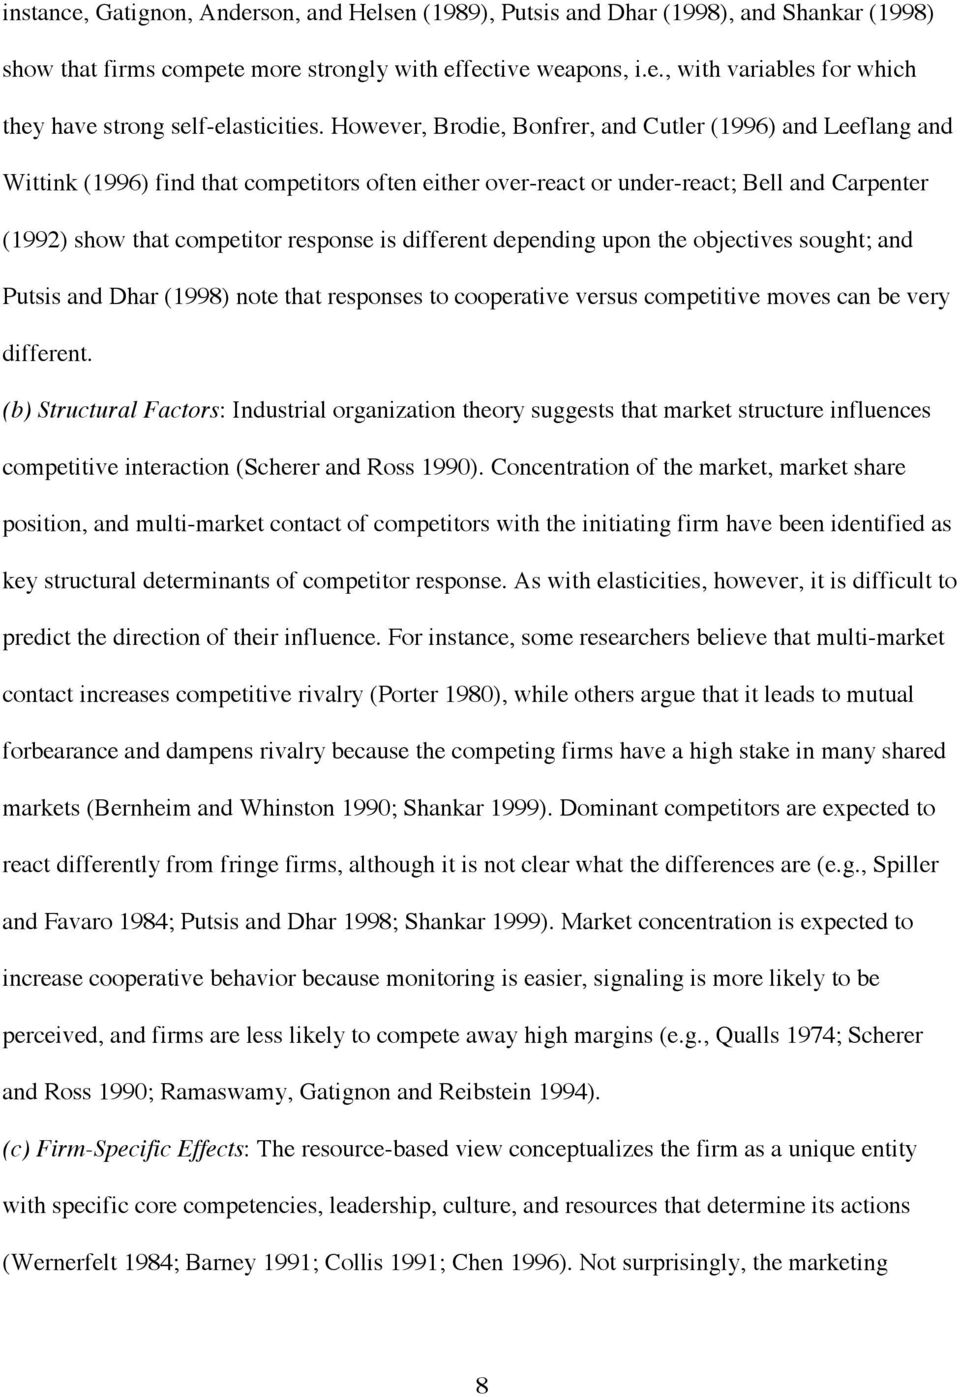 different depending upon the objectives sought; and Putsis and Dhar (1998) note that responses to cooperative versus competitive moves can be very different.